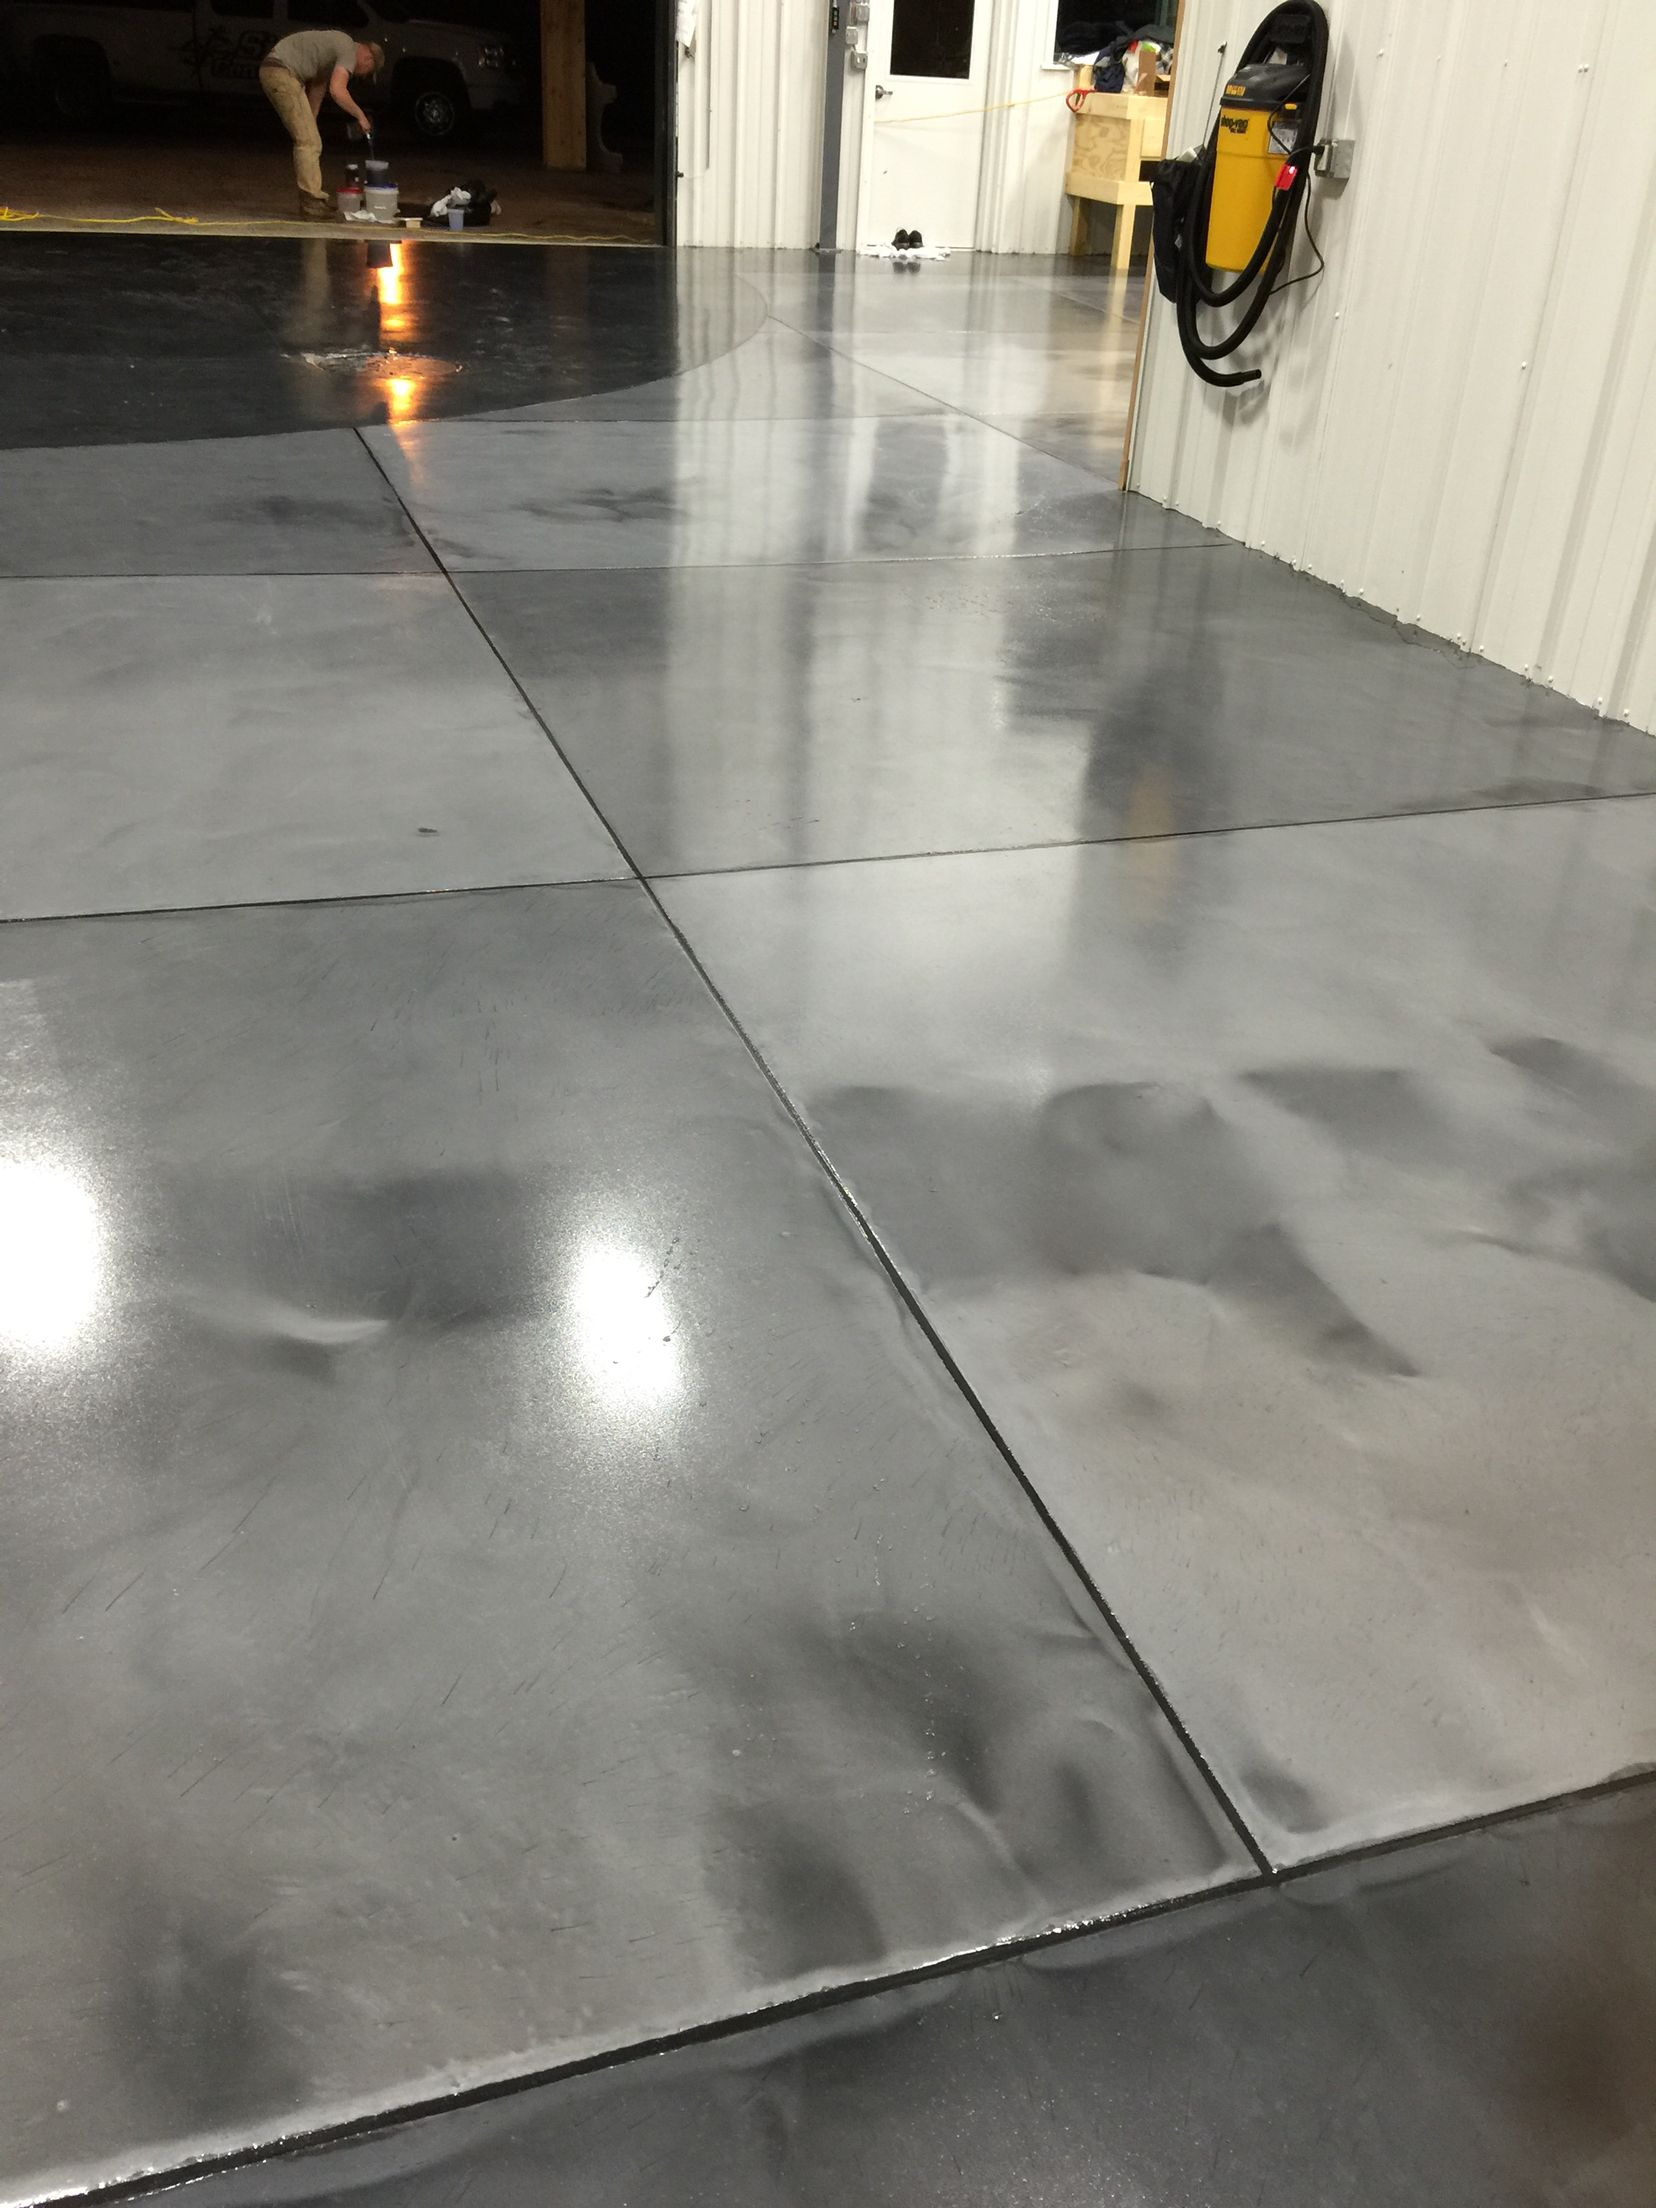 Metallic Epoxy Floor Coatings With Epoxy Grout Lines By Sierra